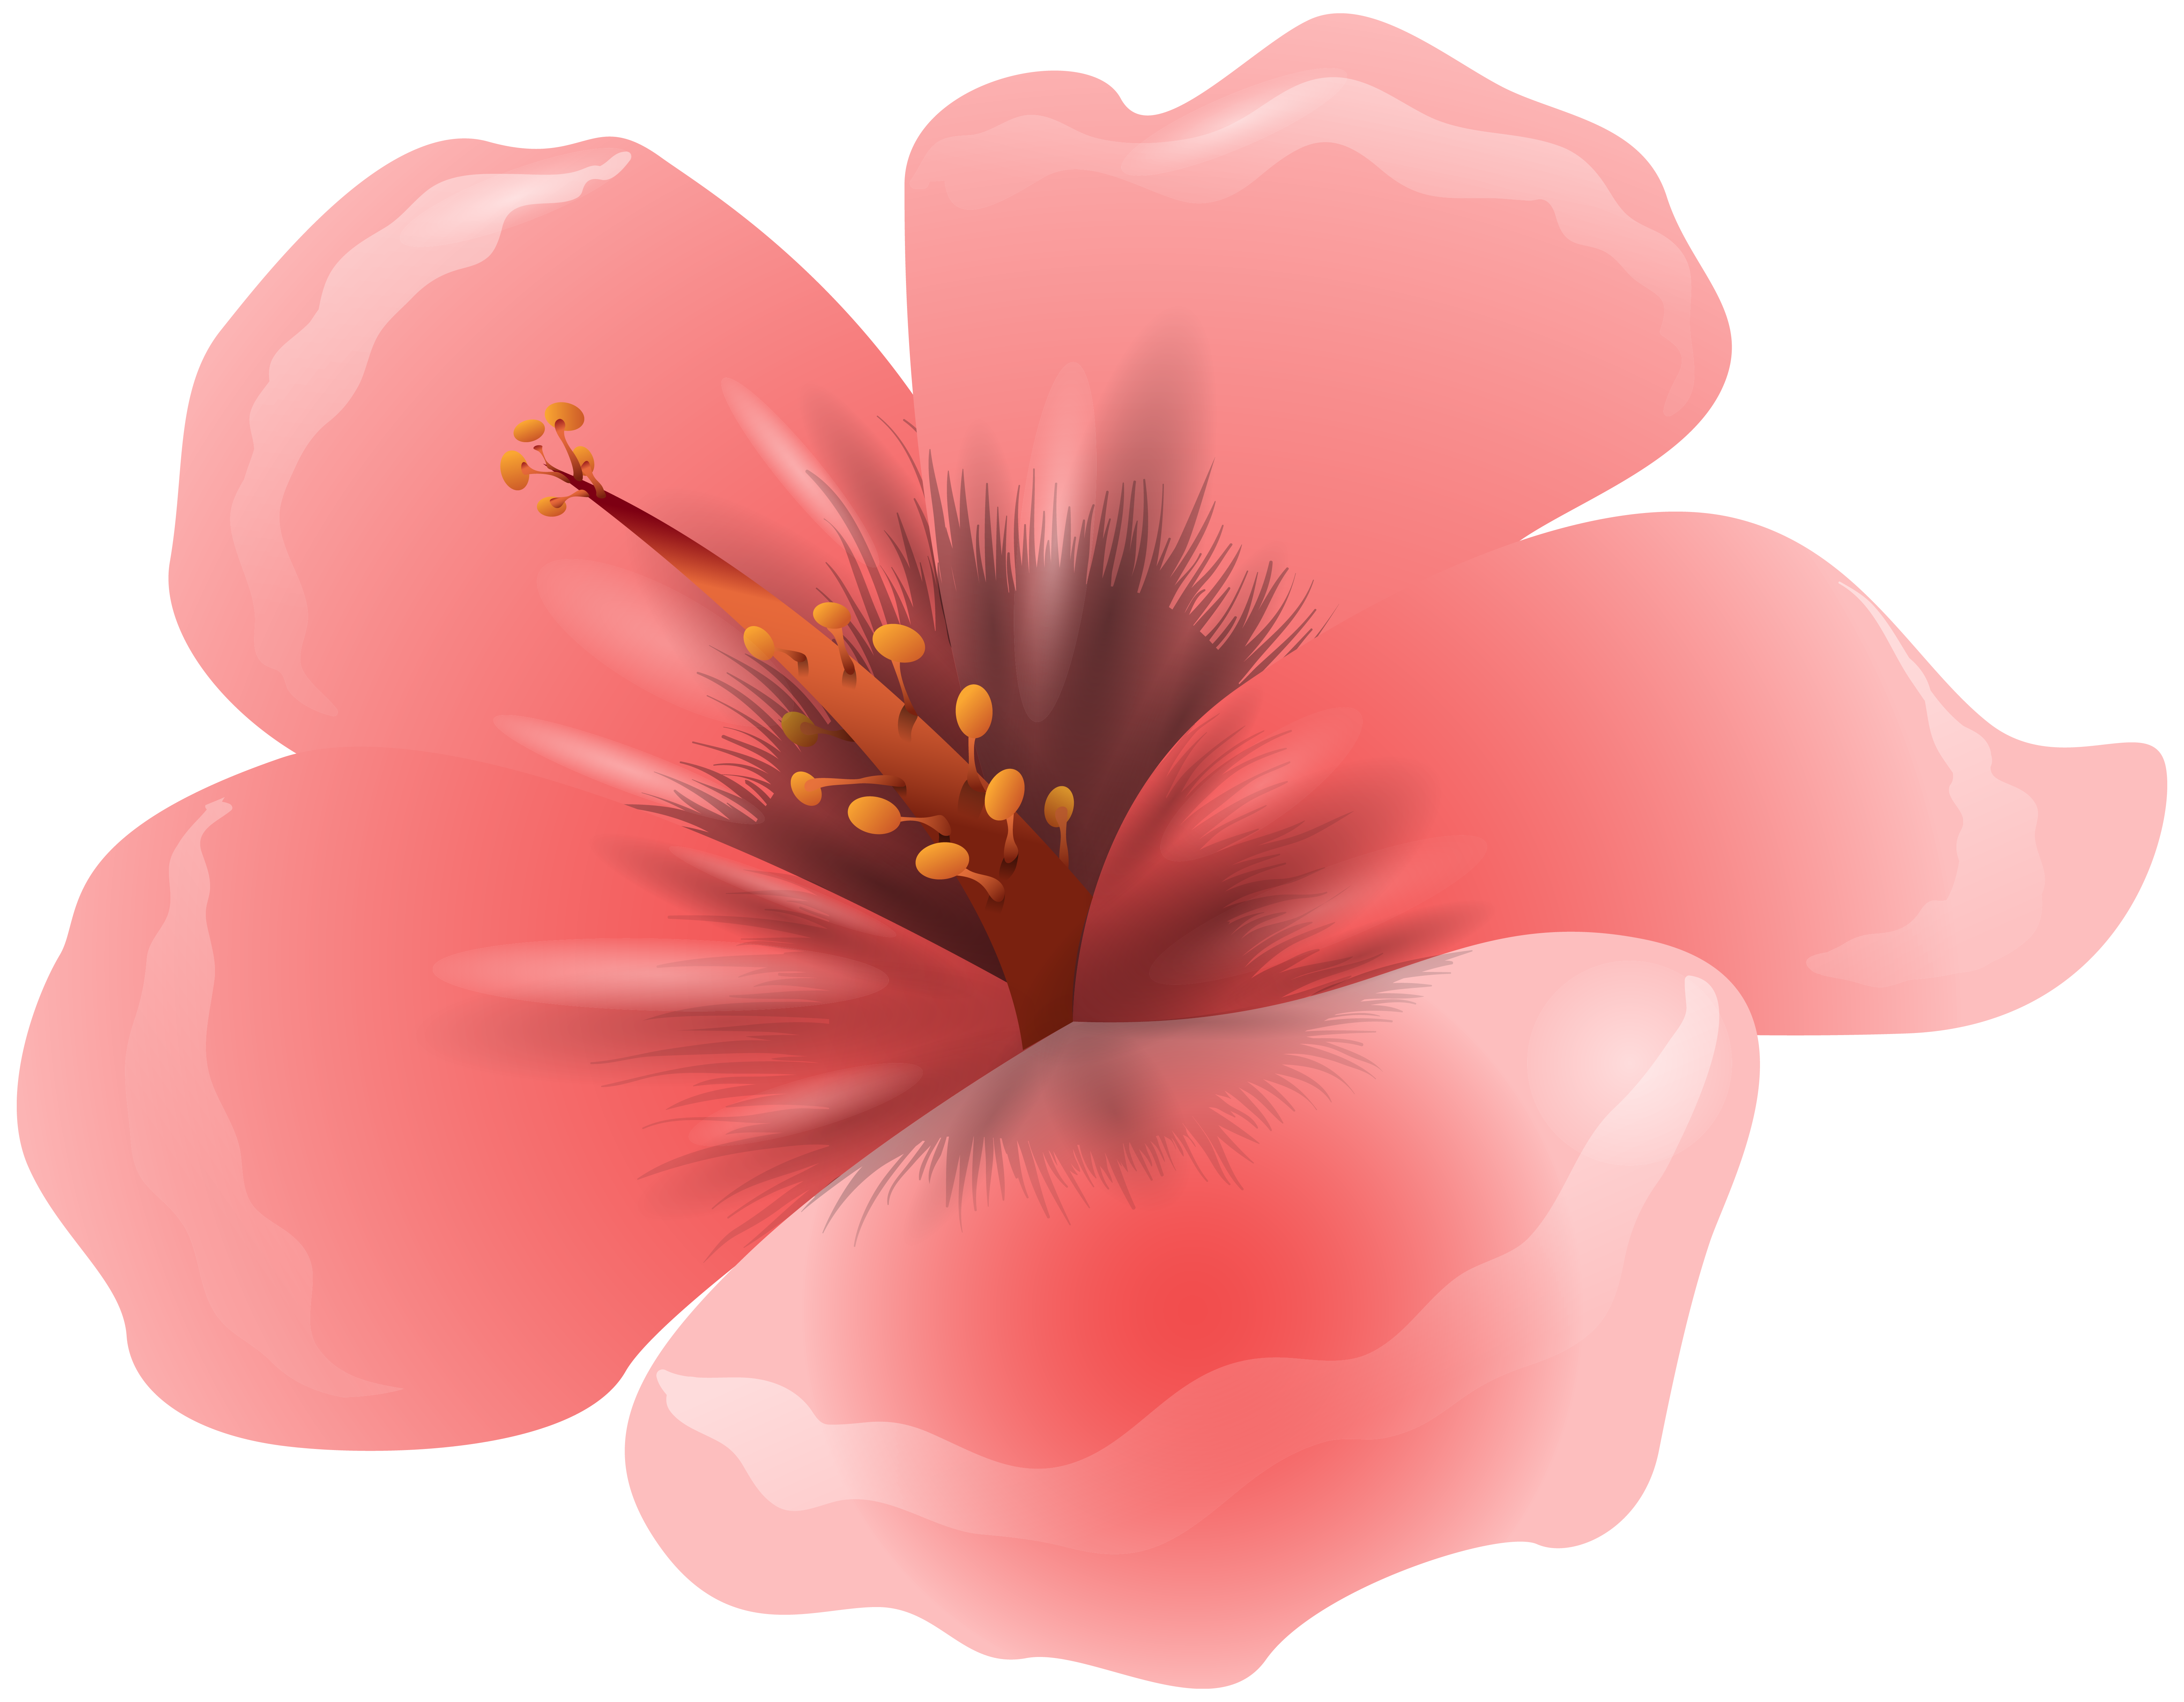 Pink flower clipart png. Large image gallery yopriceville